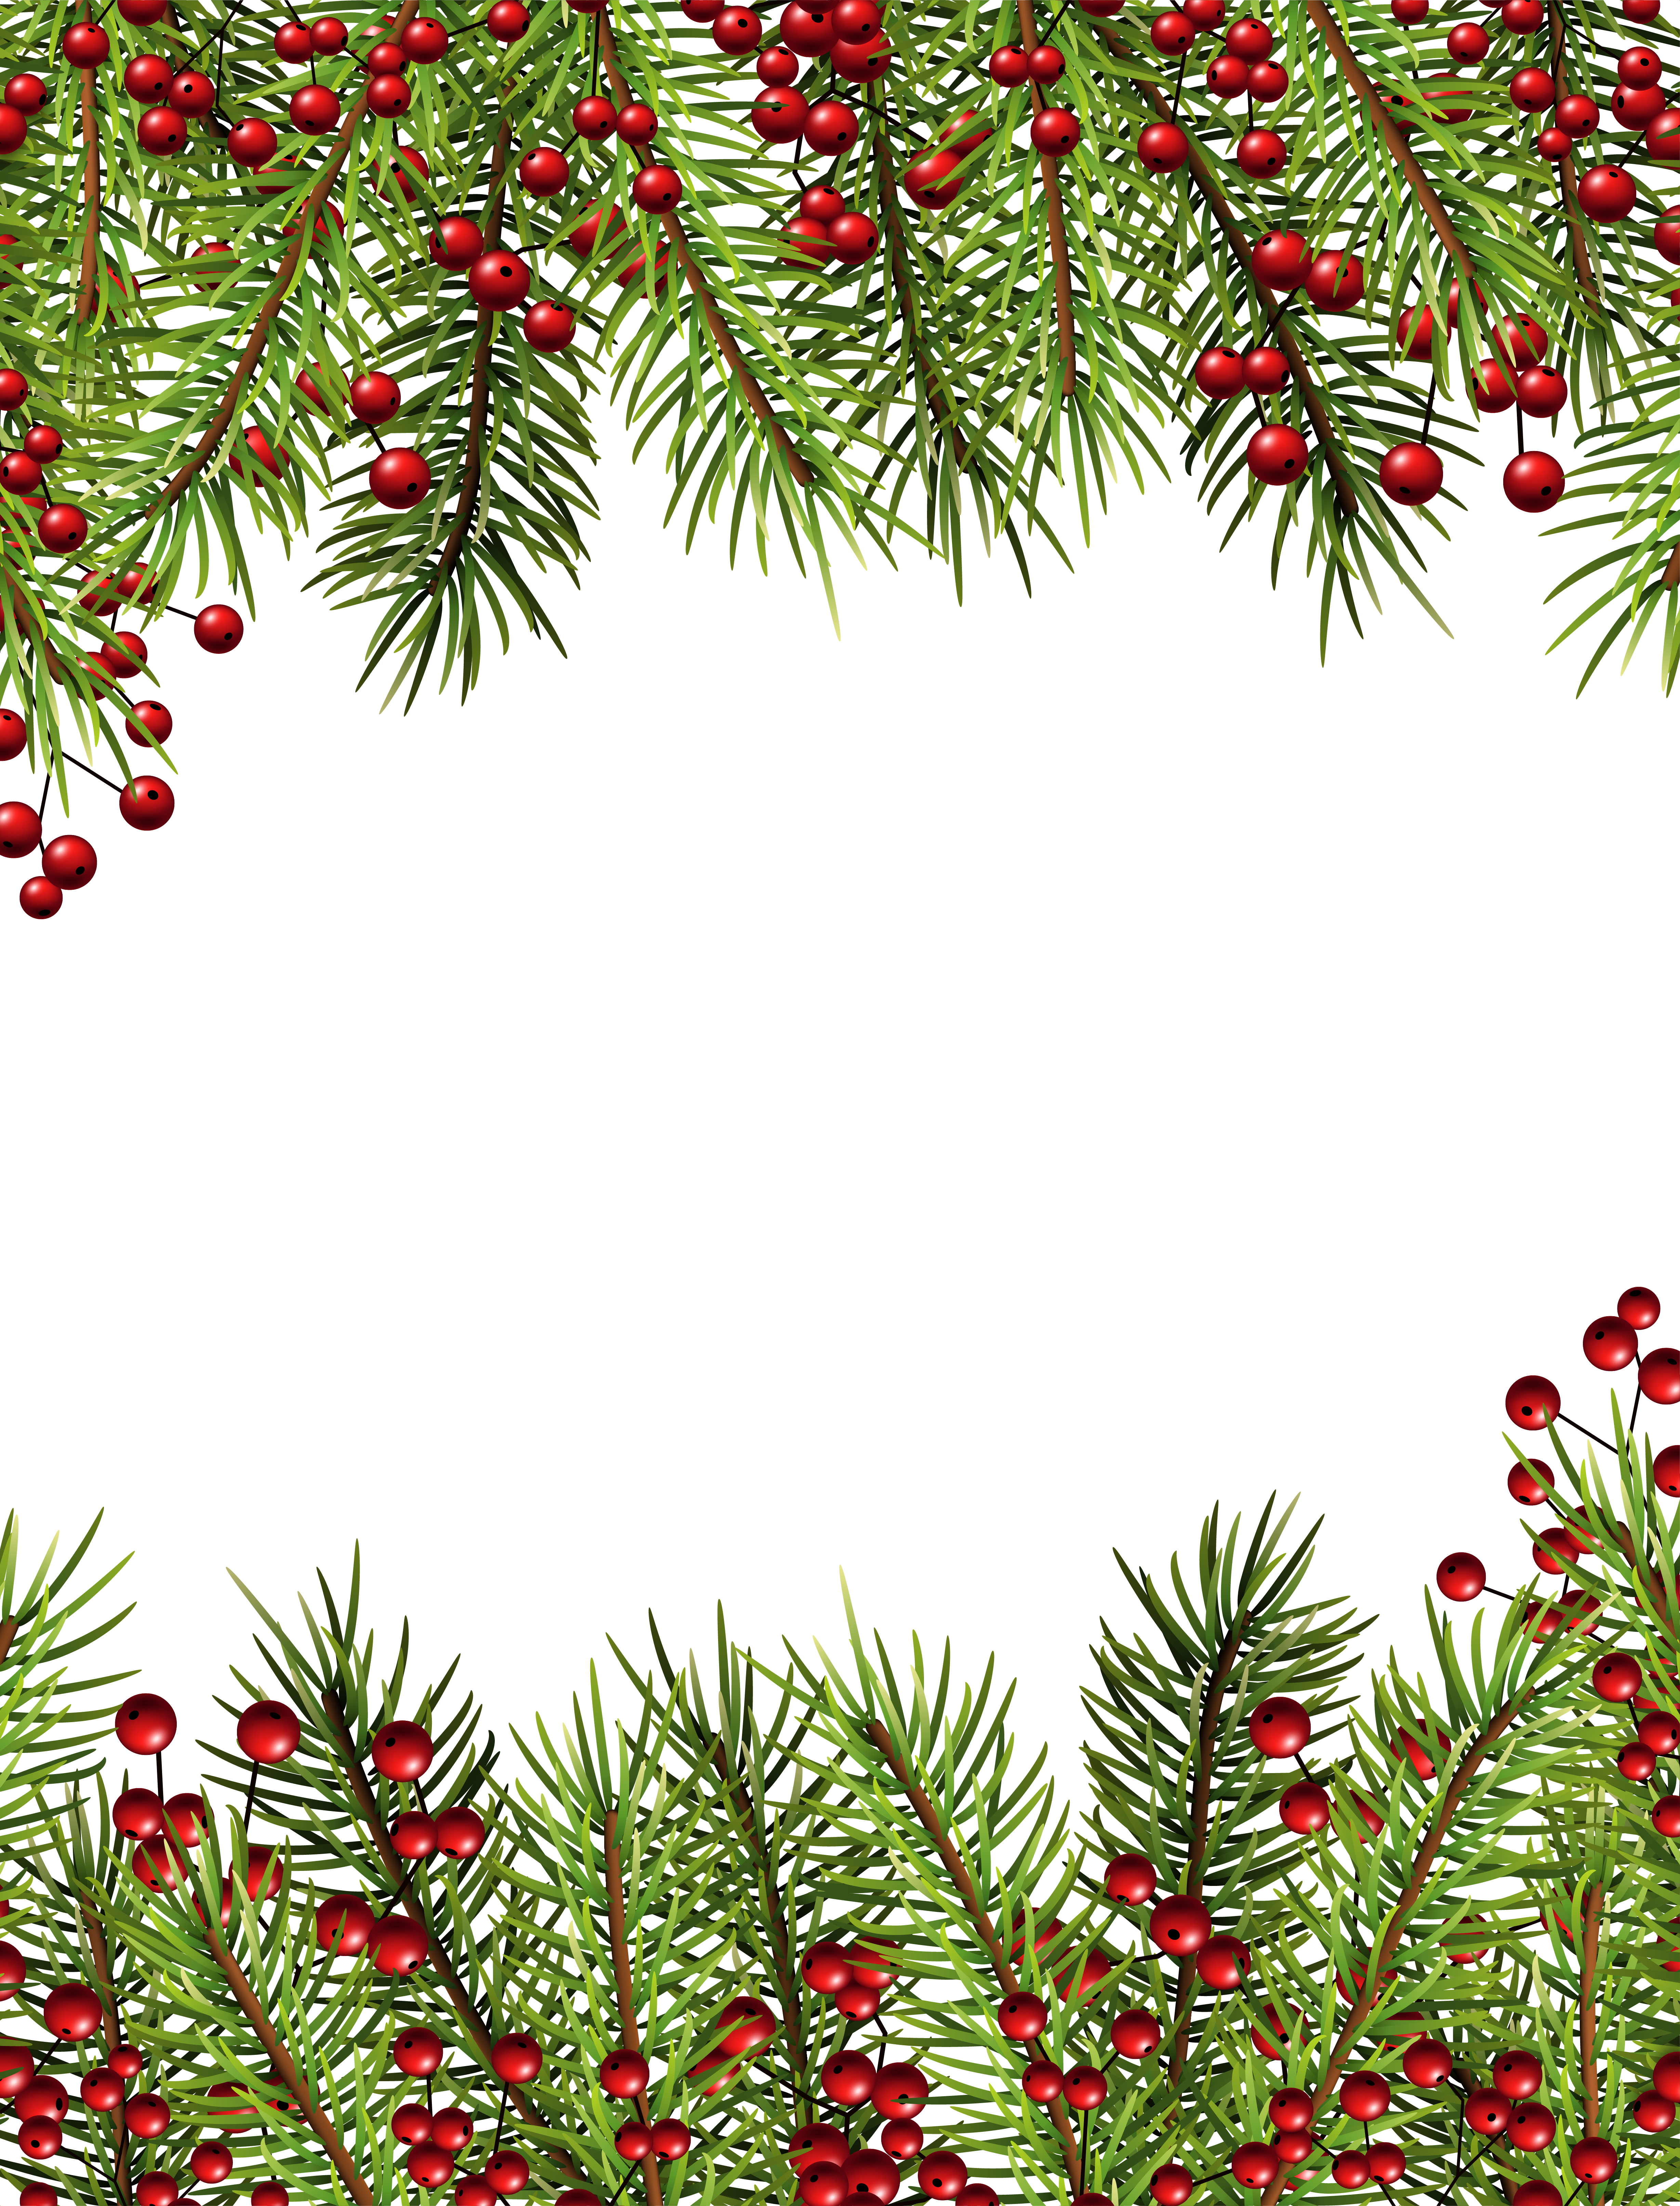 Holly clipart frame. Christmas transparent border png